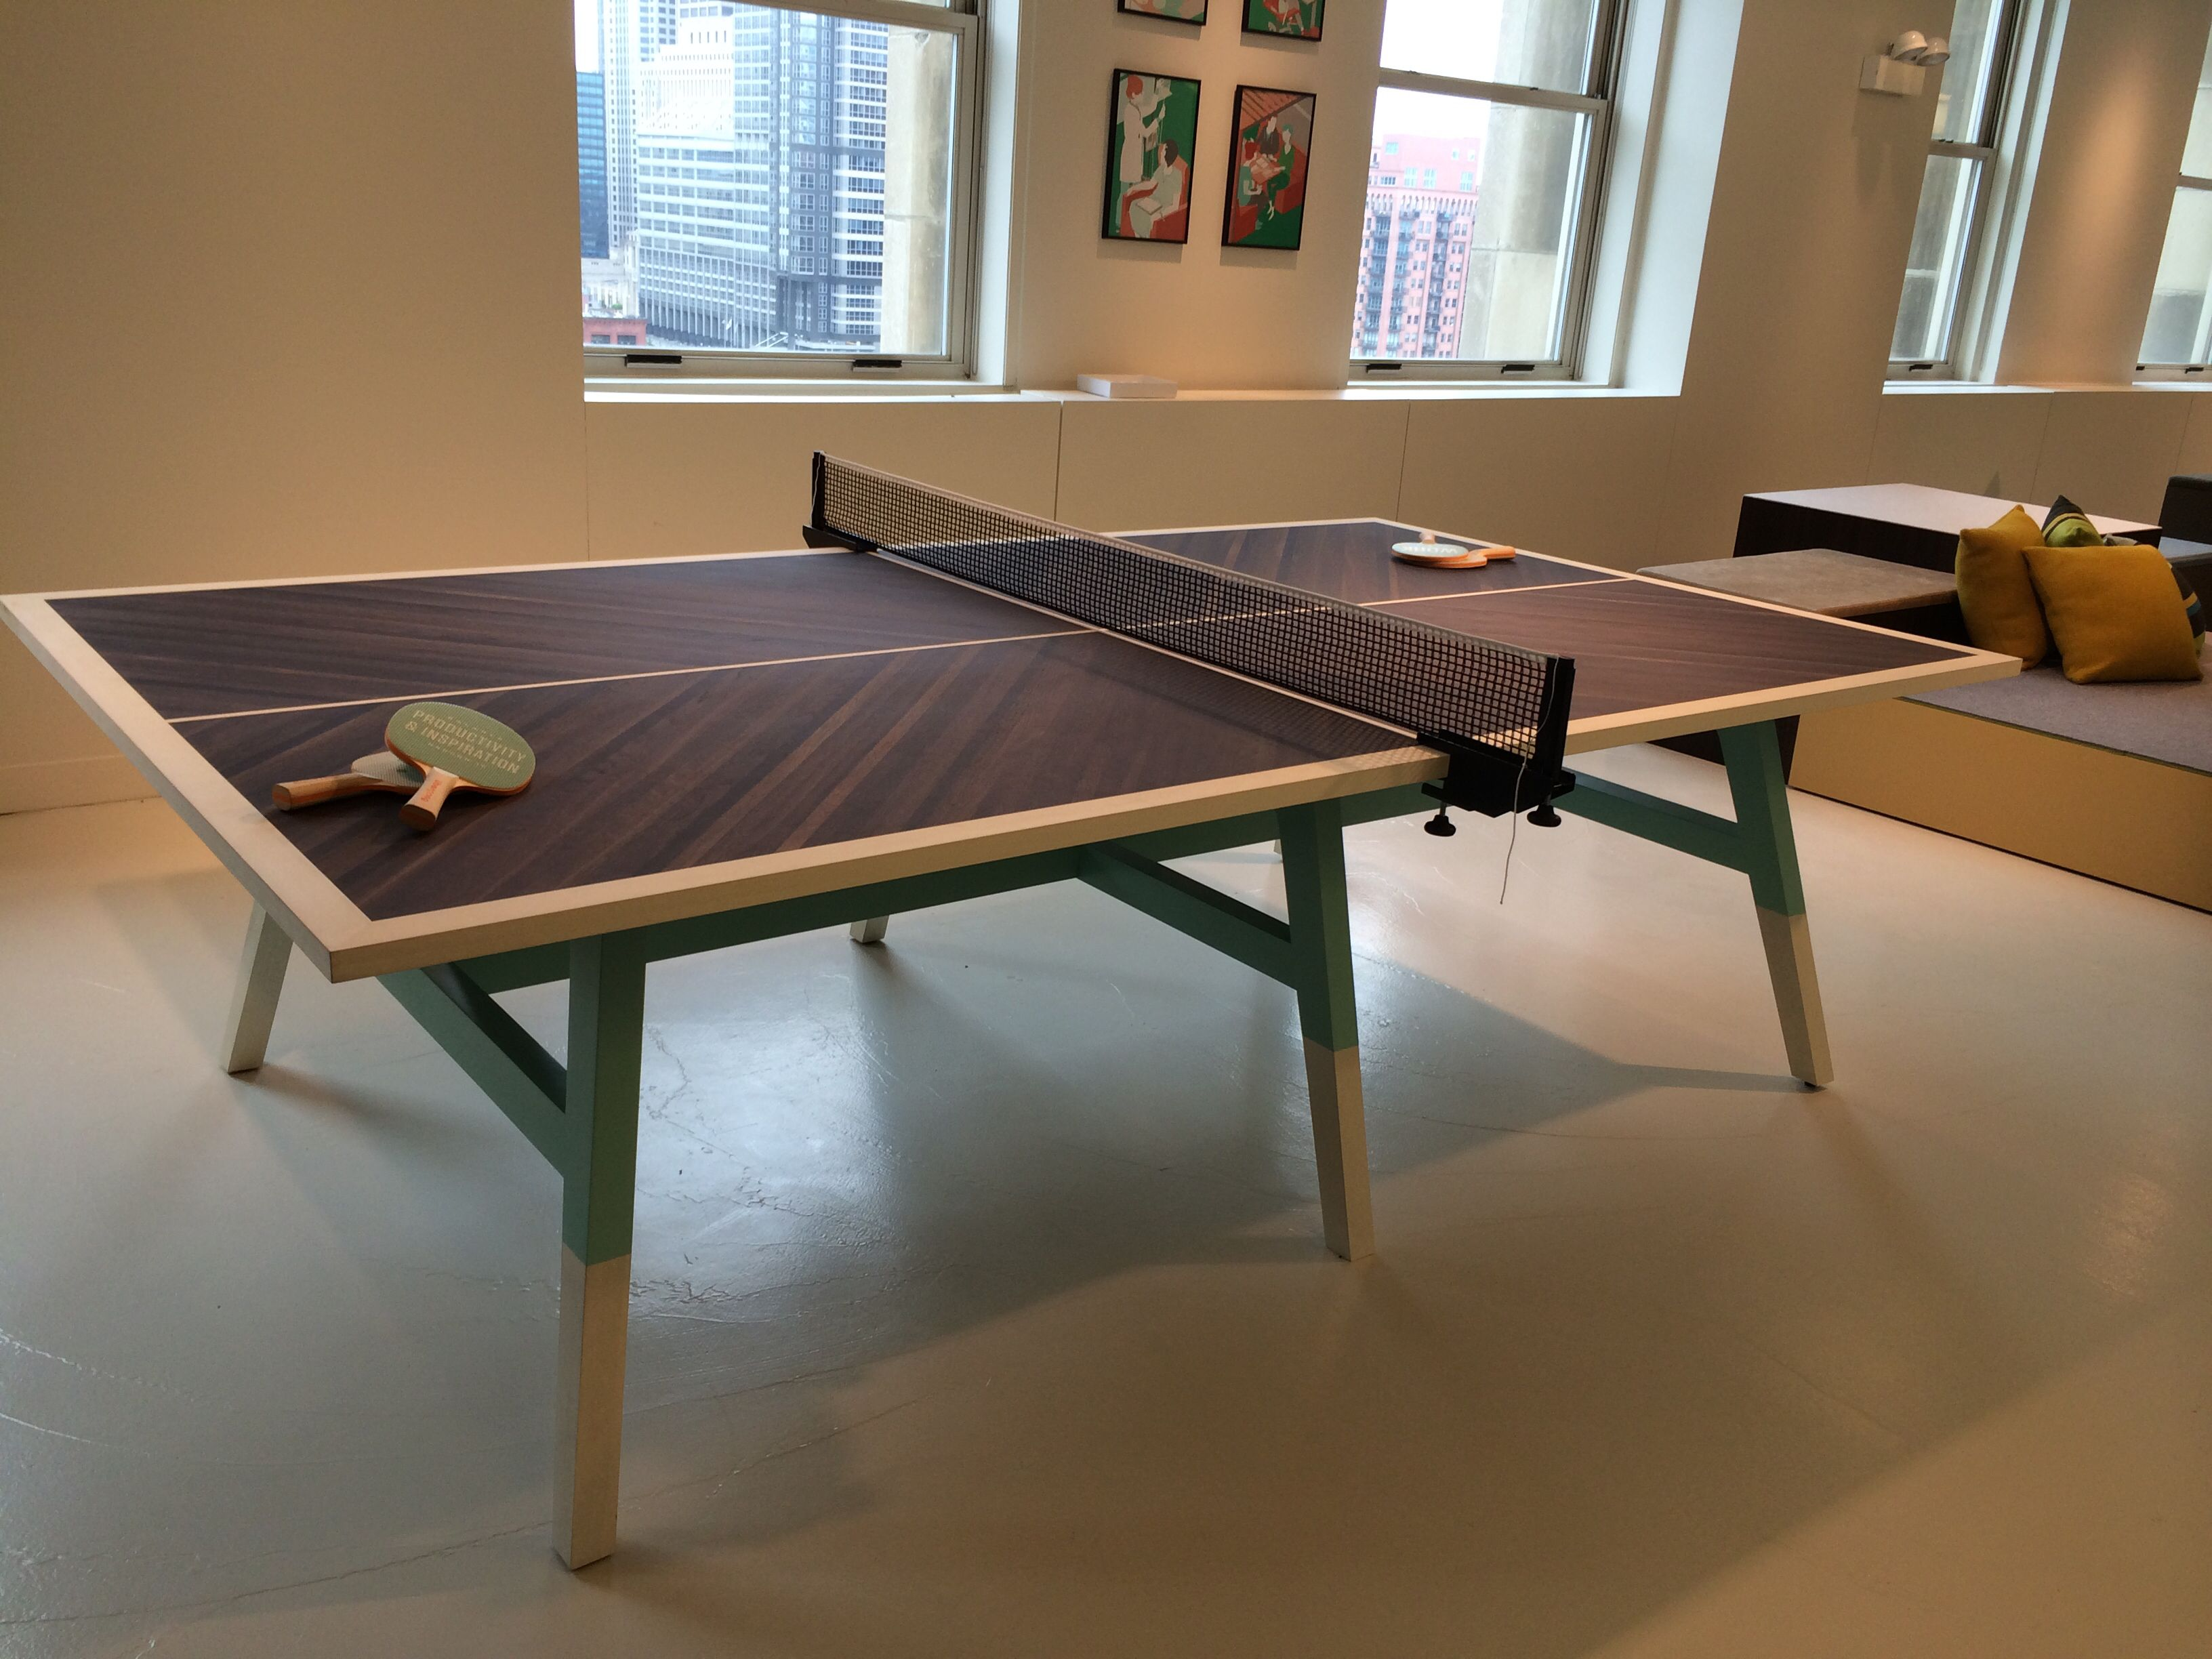 Ofs Wooden Herringbone And Mint Ping Pong Table Innovation Room Best Dining Room Ping Pong Table Inspiration